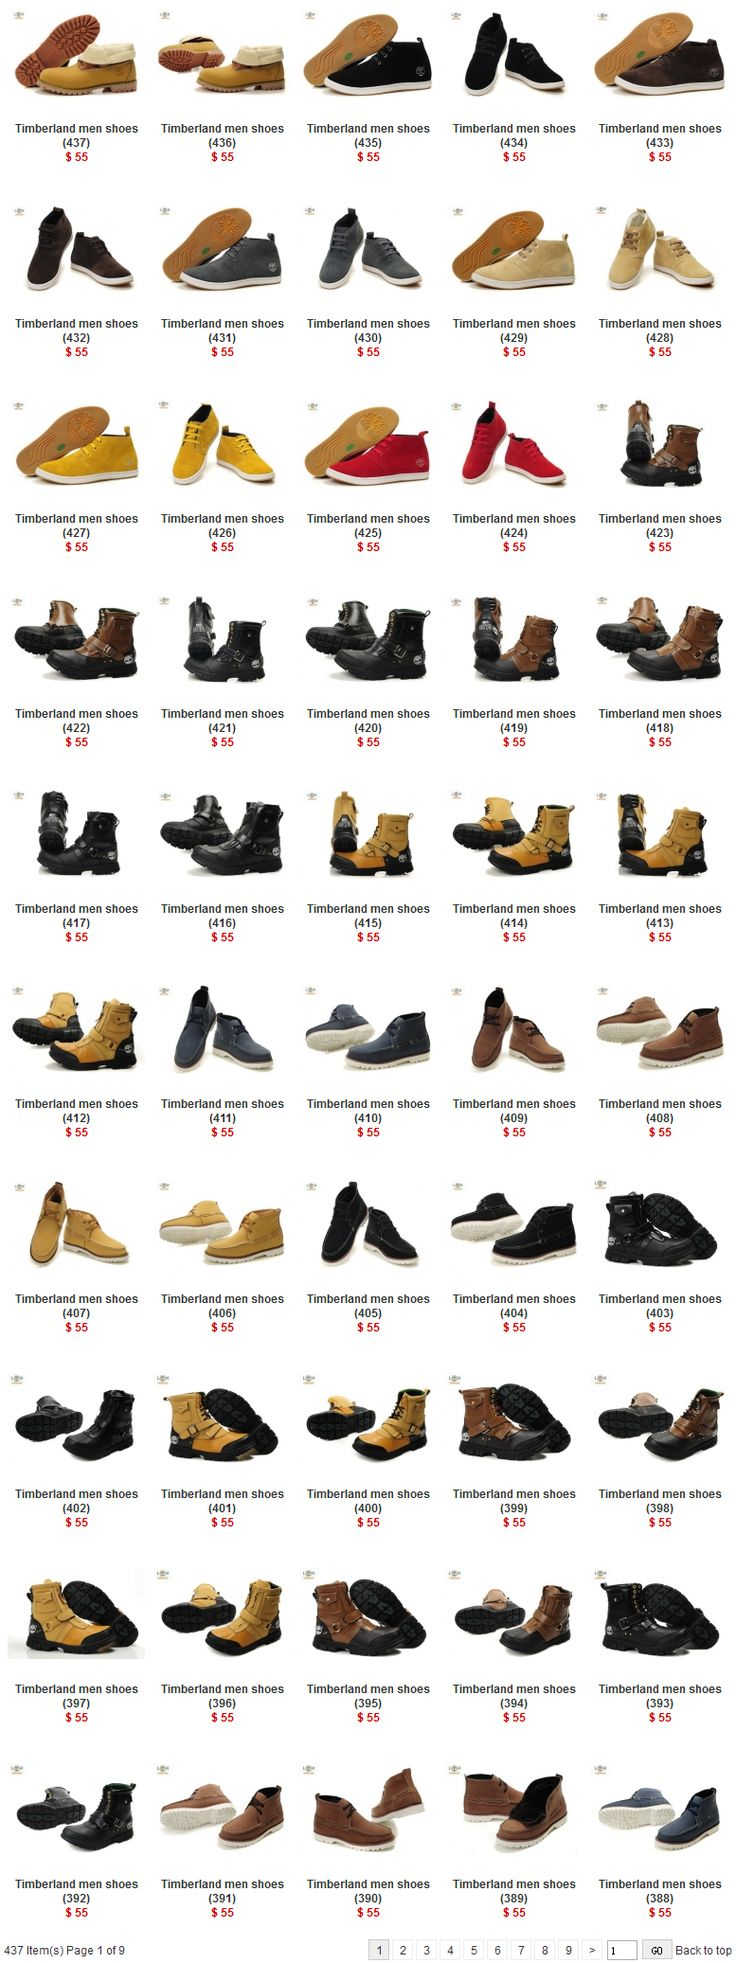 17 Best Images About Brand Men amp Women Shoes On Pinterest